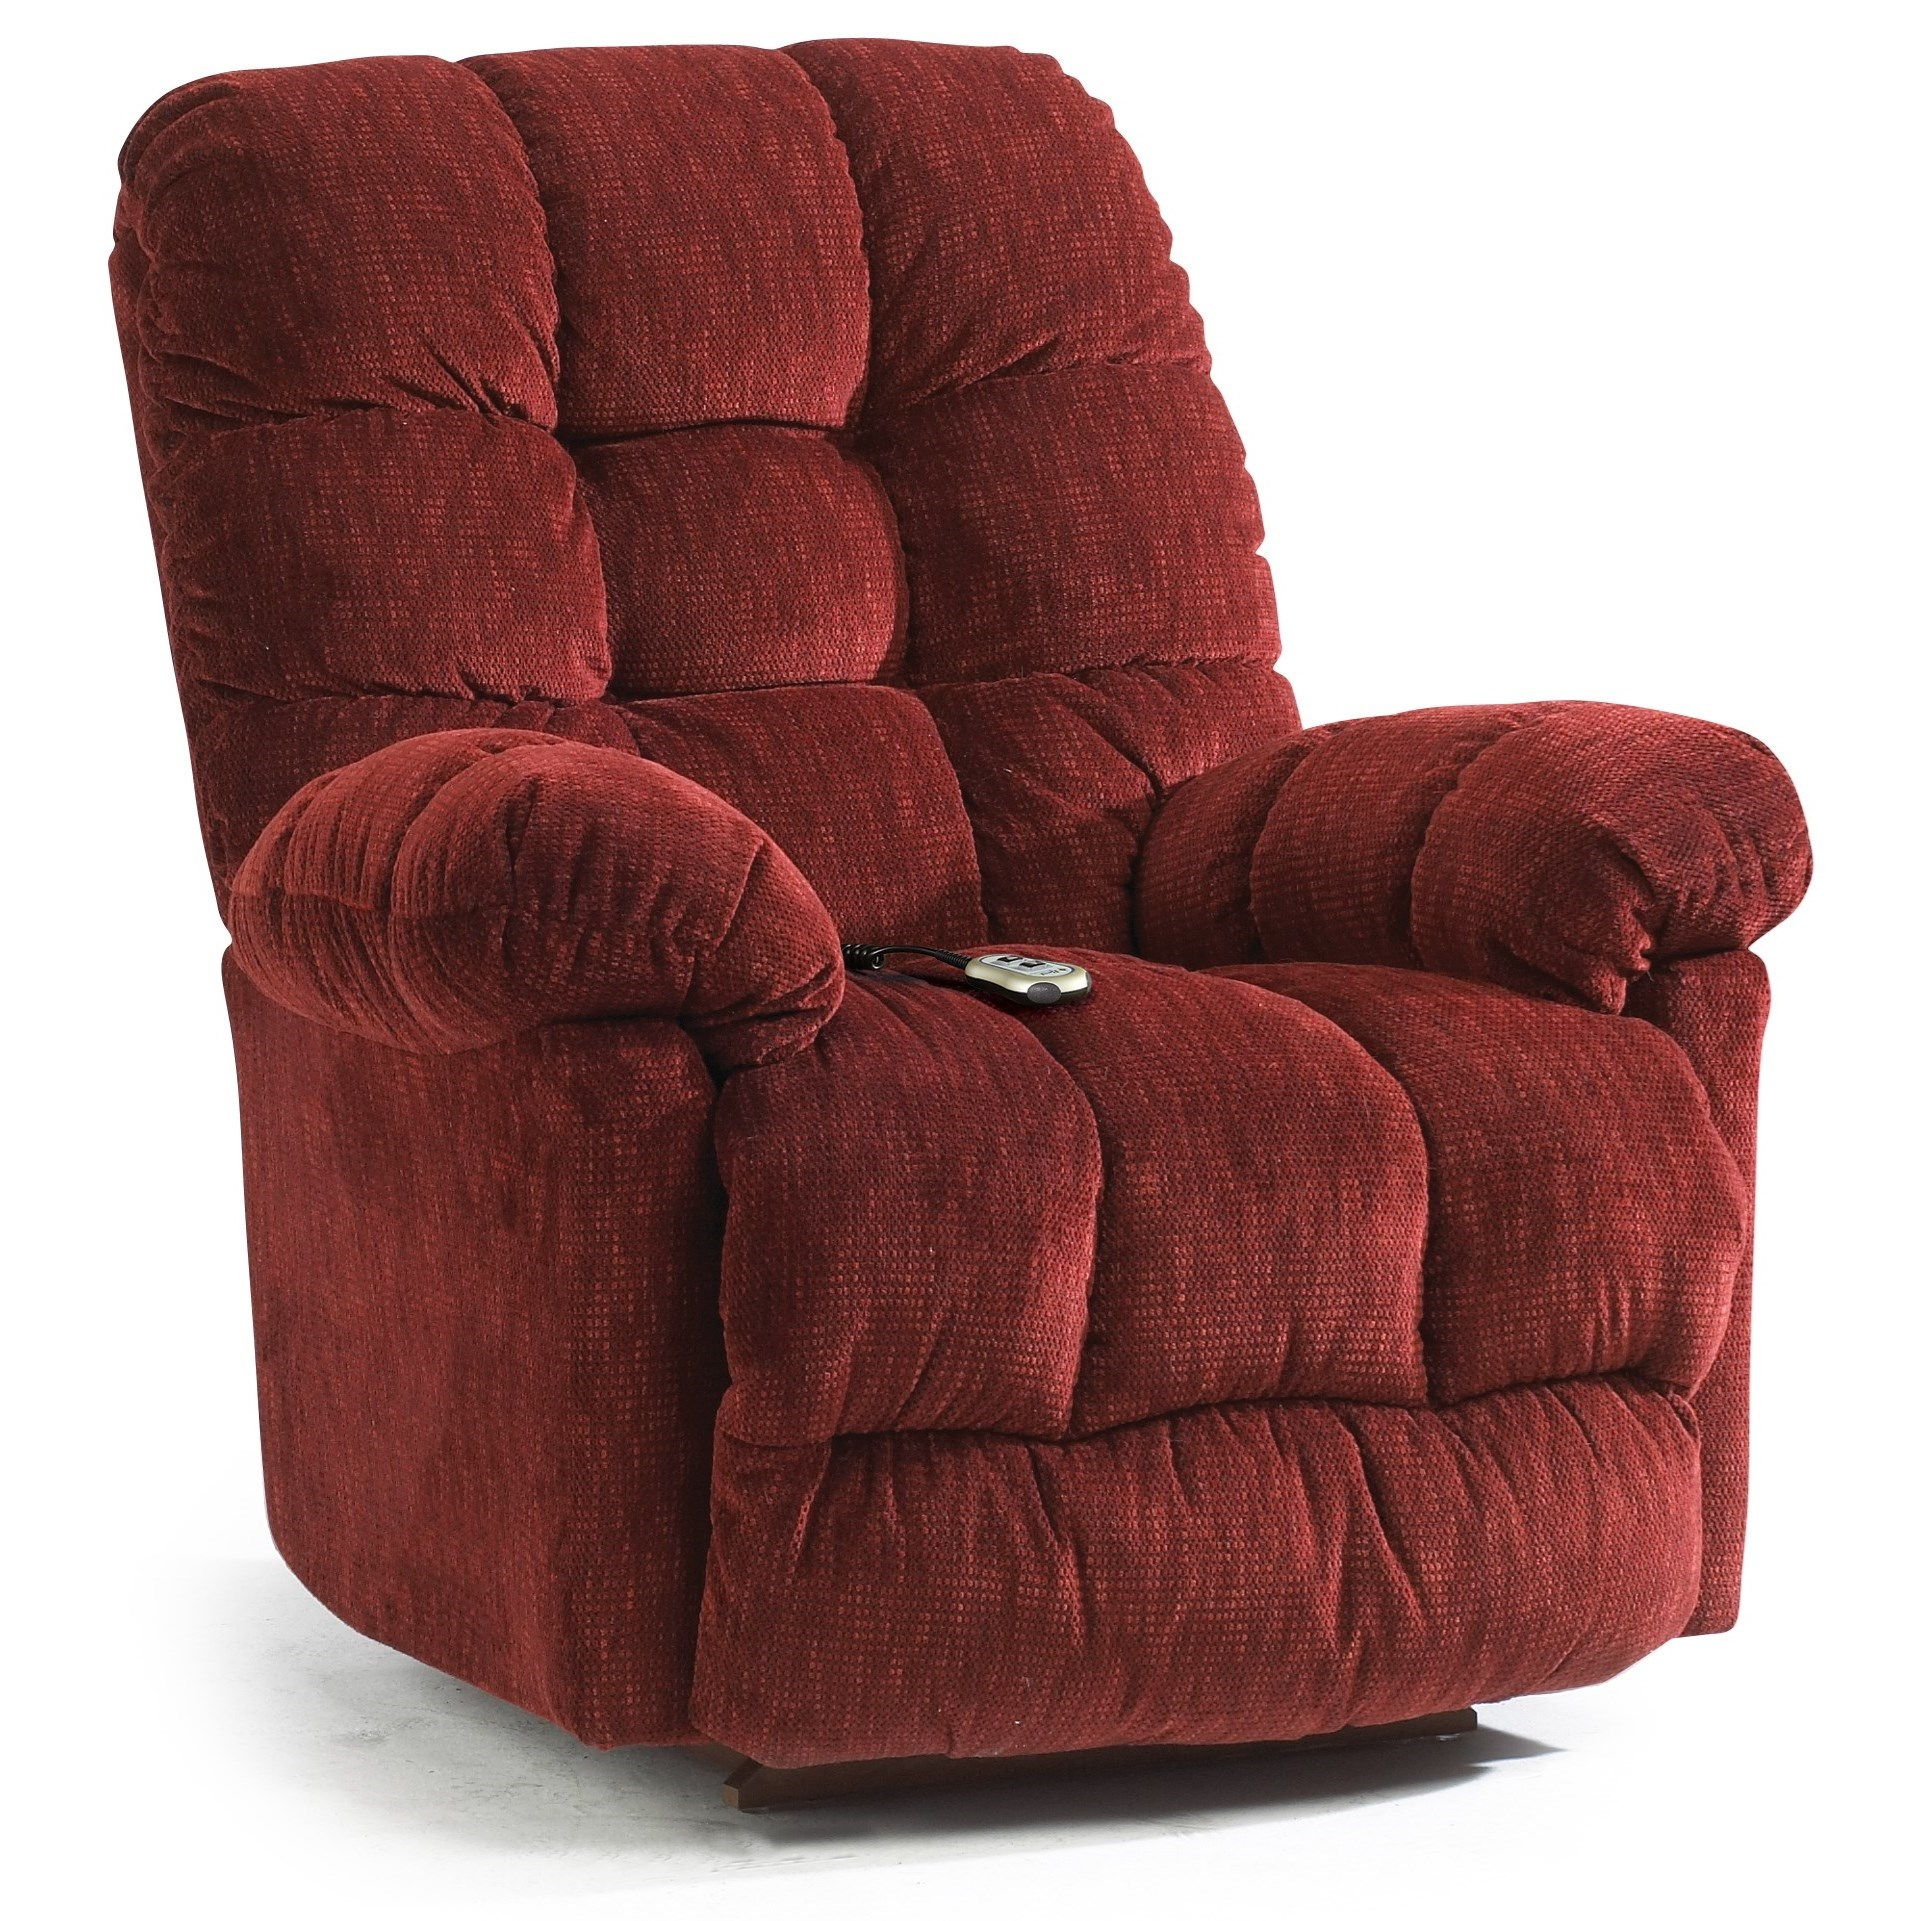 Medium Recliners Brosmer Power Wallhugger Recliner by Best Home Furnishings at Rooms and Rest